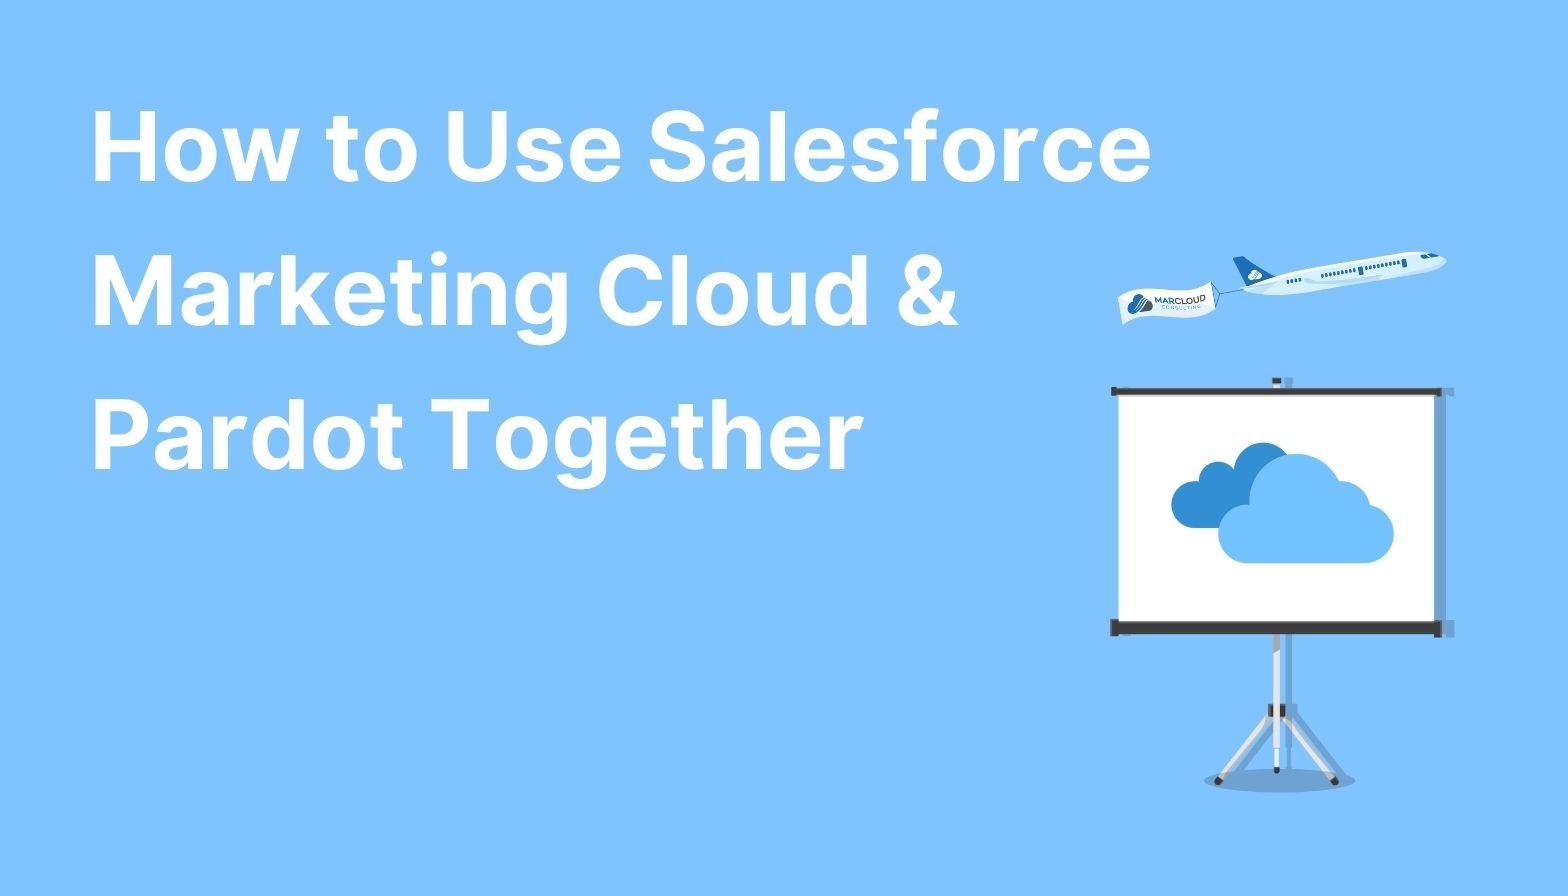 Feature image: How to Use Salesforce Marketing Cloud and Pardot Together